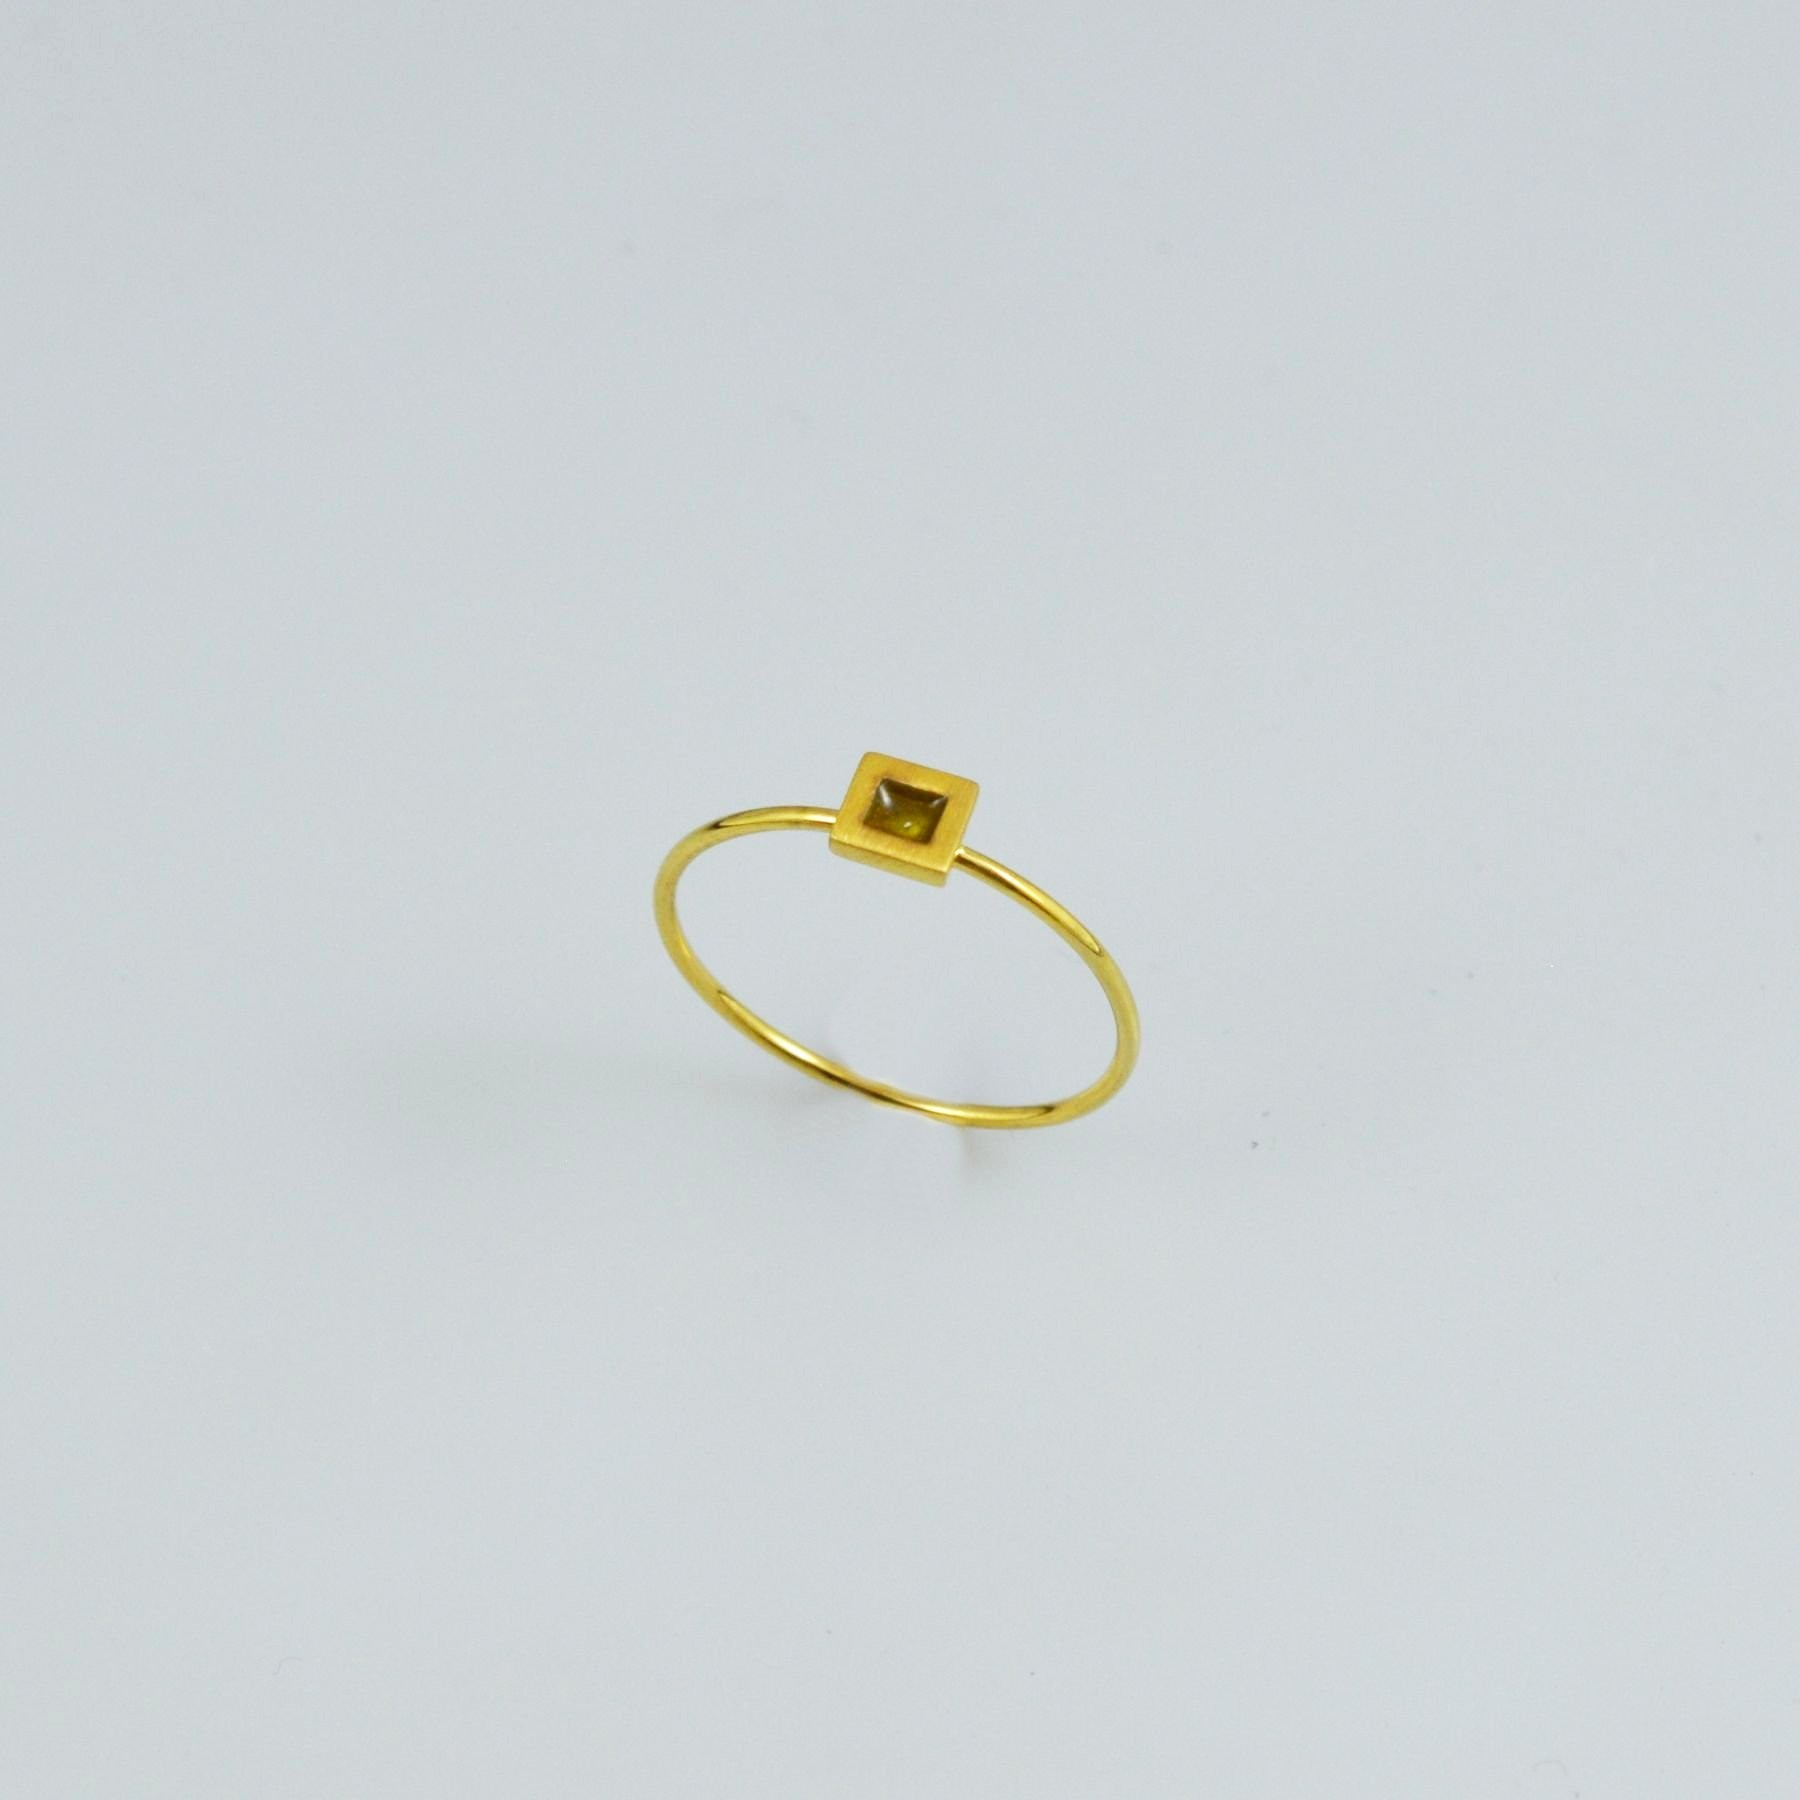 Handmade gold ring 14K with enamel